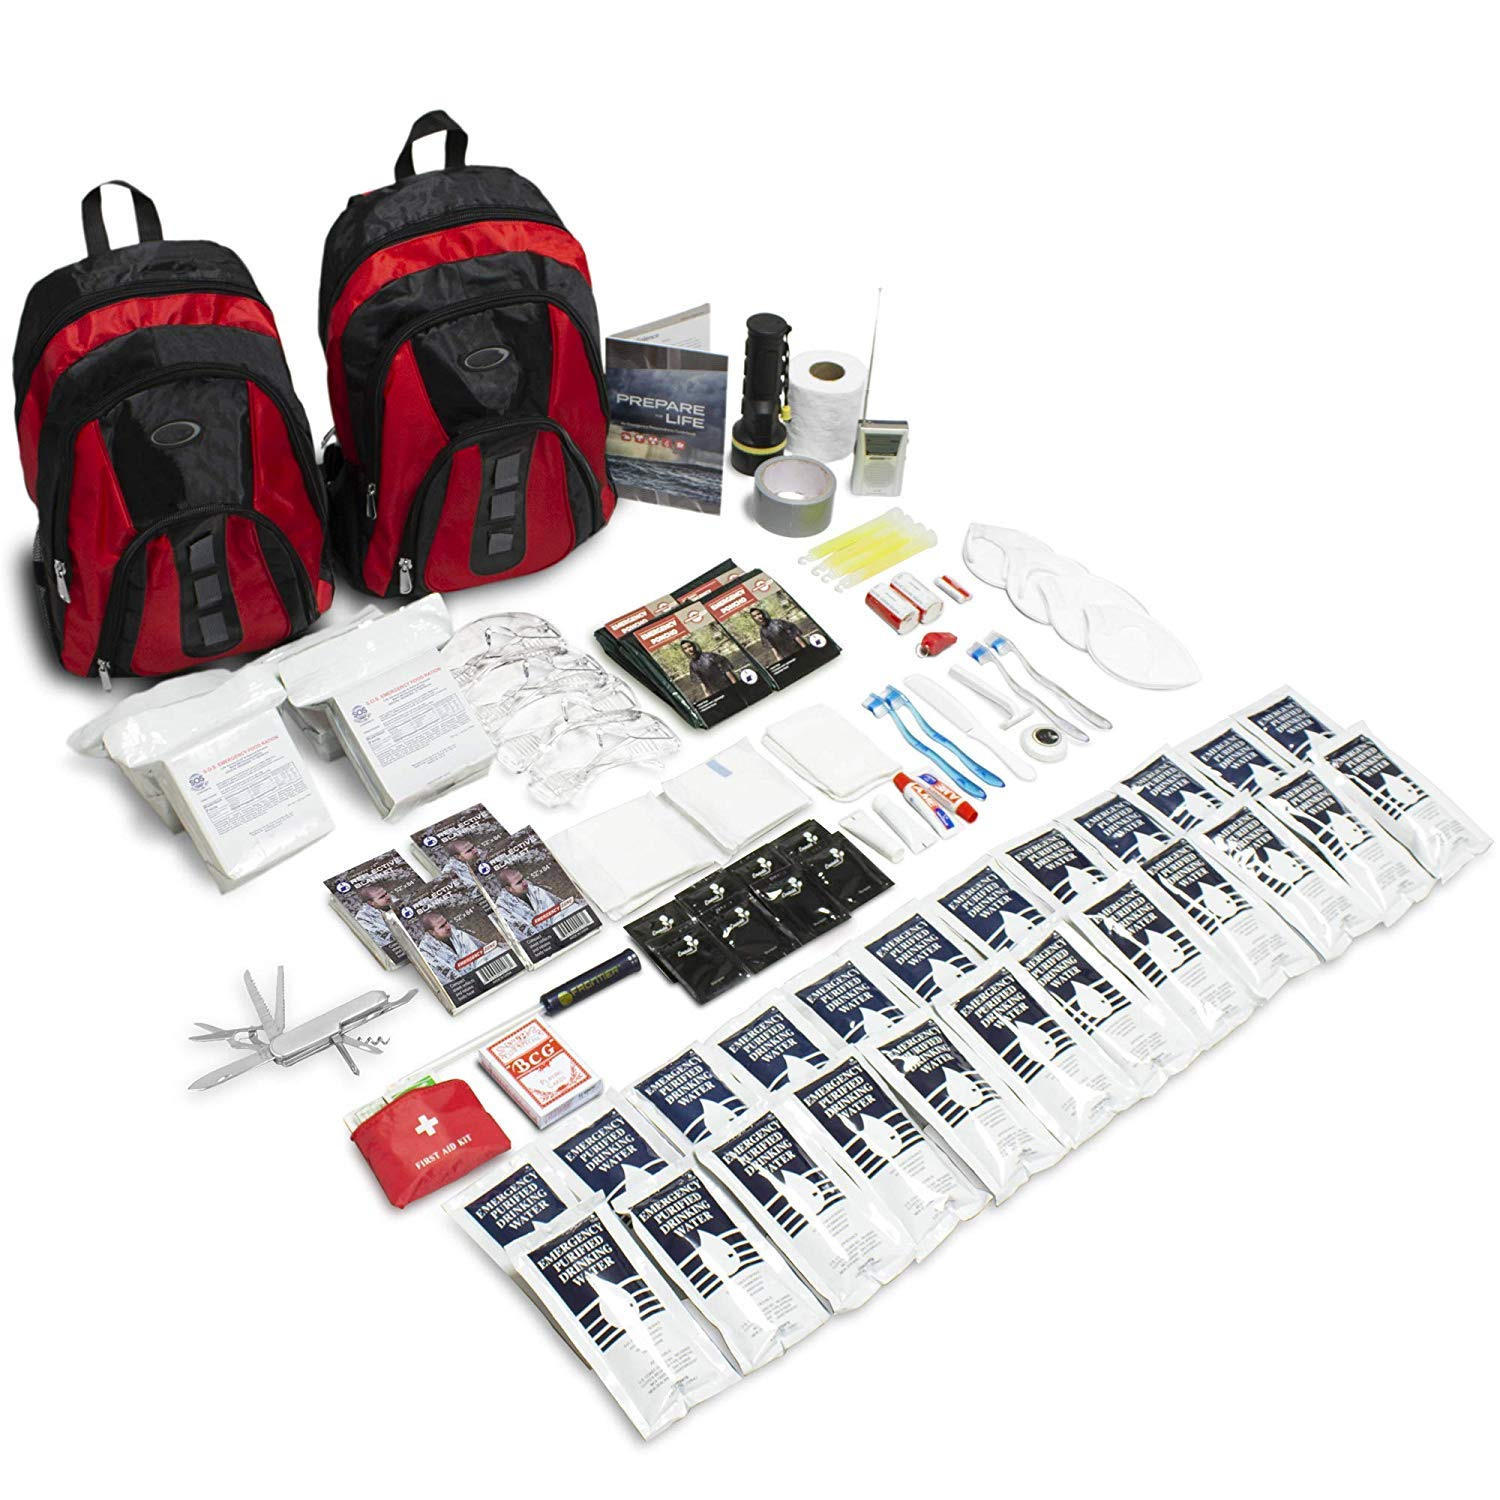 Emergency Zone The Essentials Complete Deluxe Survival 72-Hour Kit, Prepare Your Family for Hurricanes, Earthquakes, FLOODS, Emergency Disaster Go Bag- Available in 2 & 4 Person, Red or Black Bag by Emergency Zone